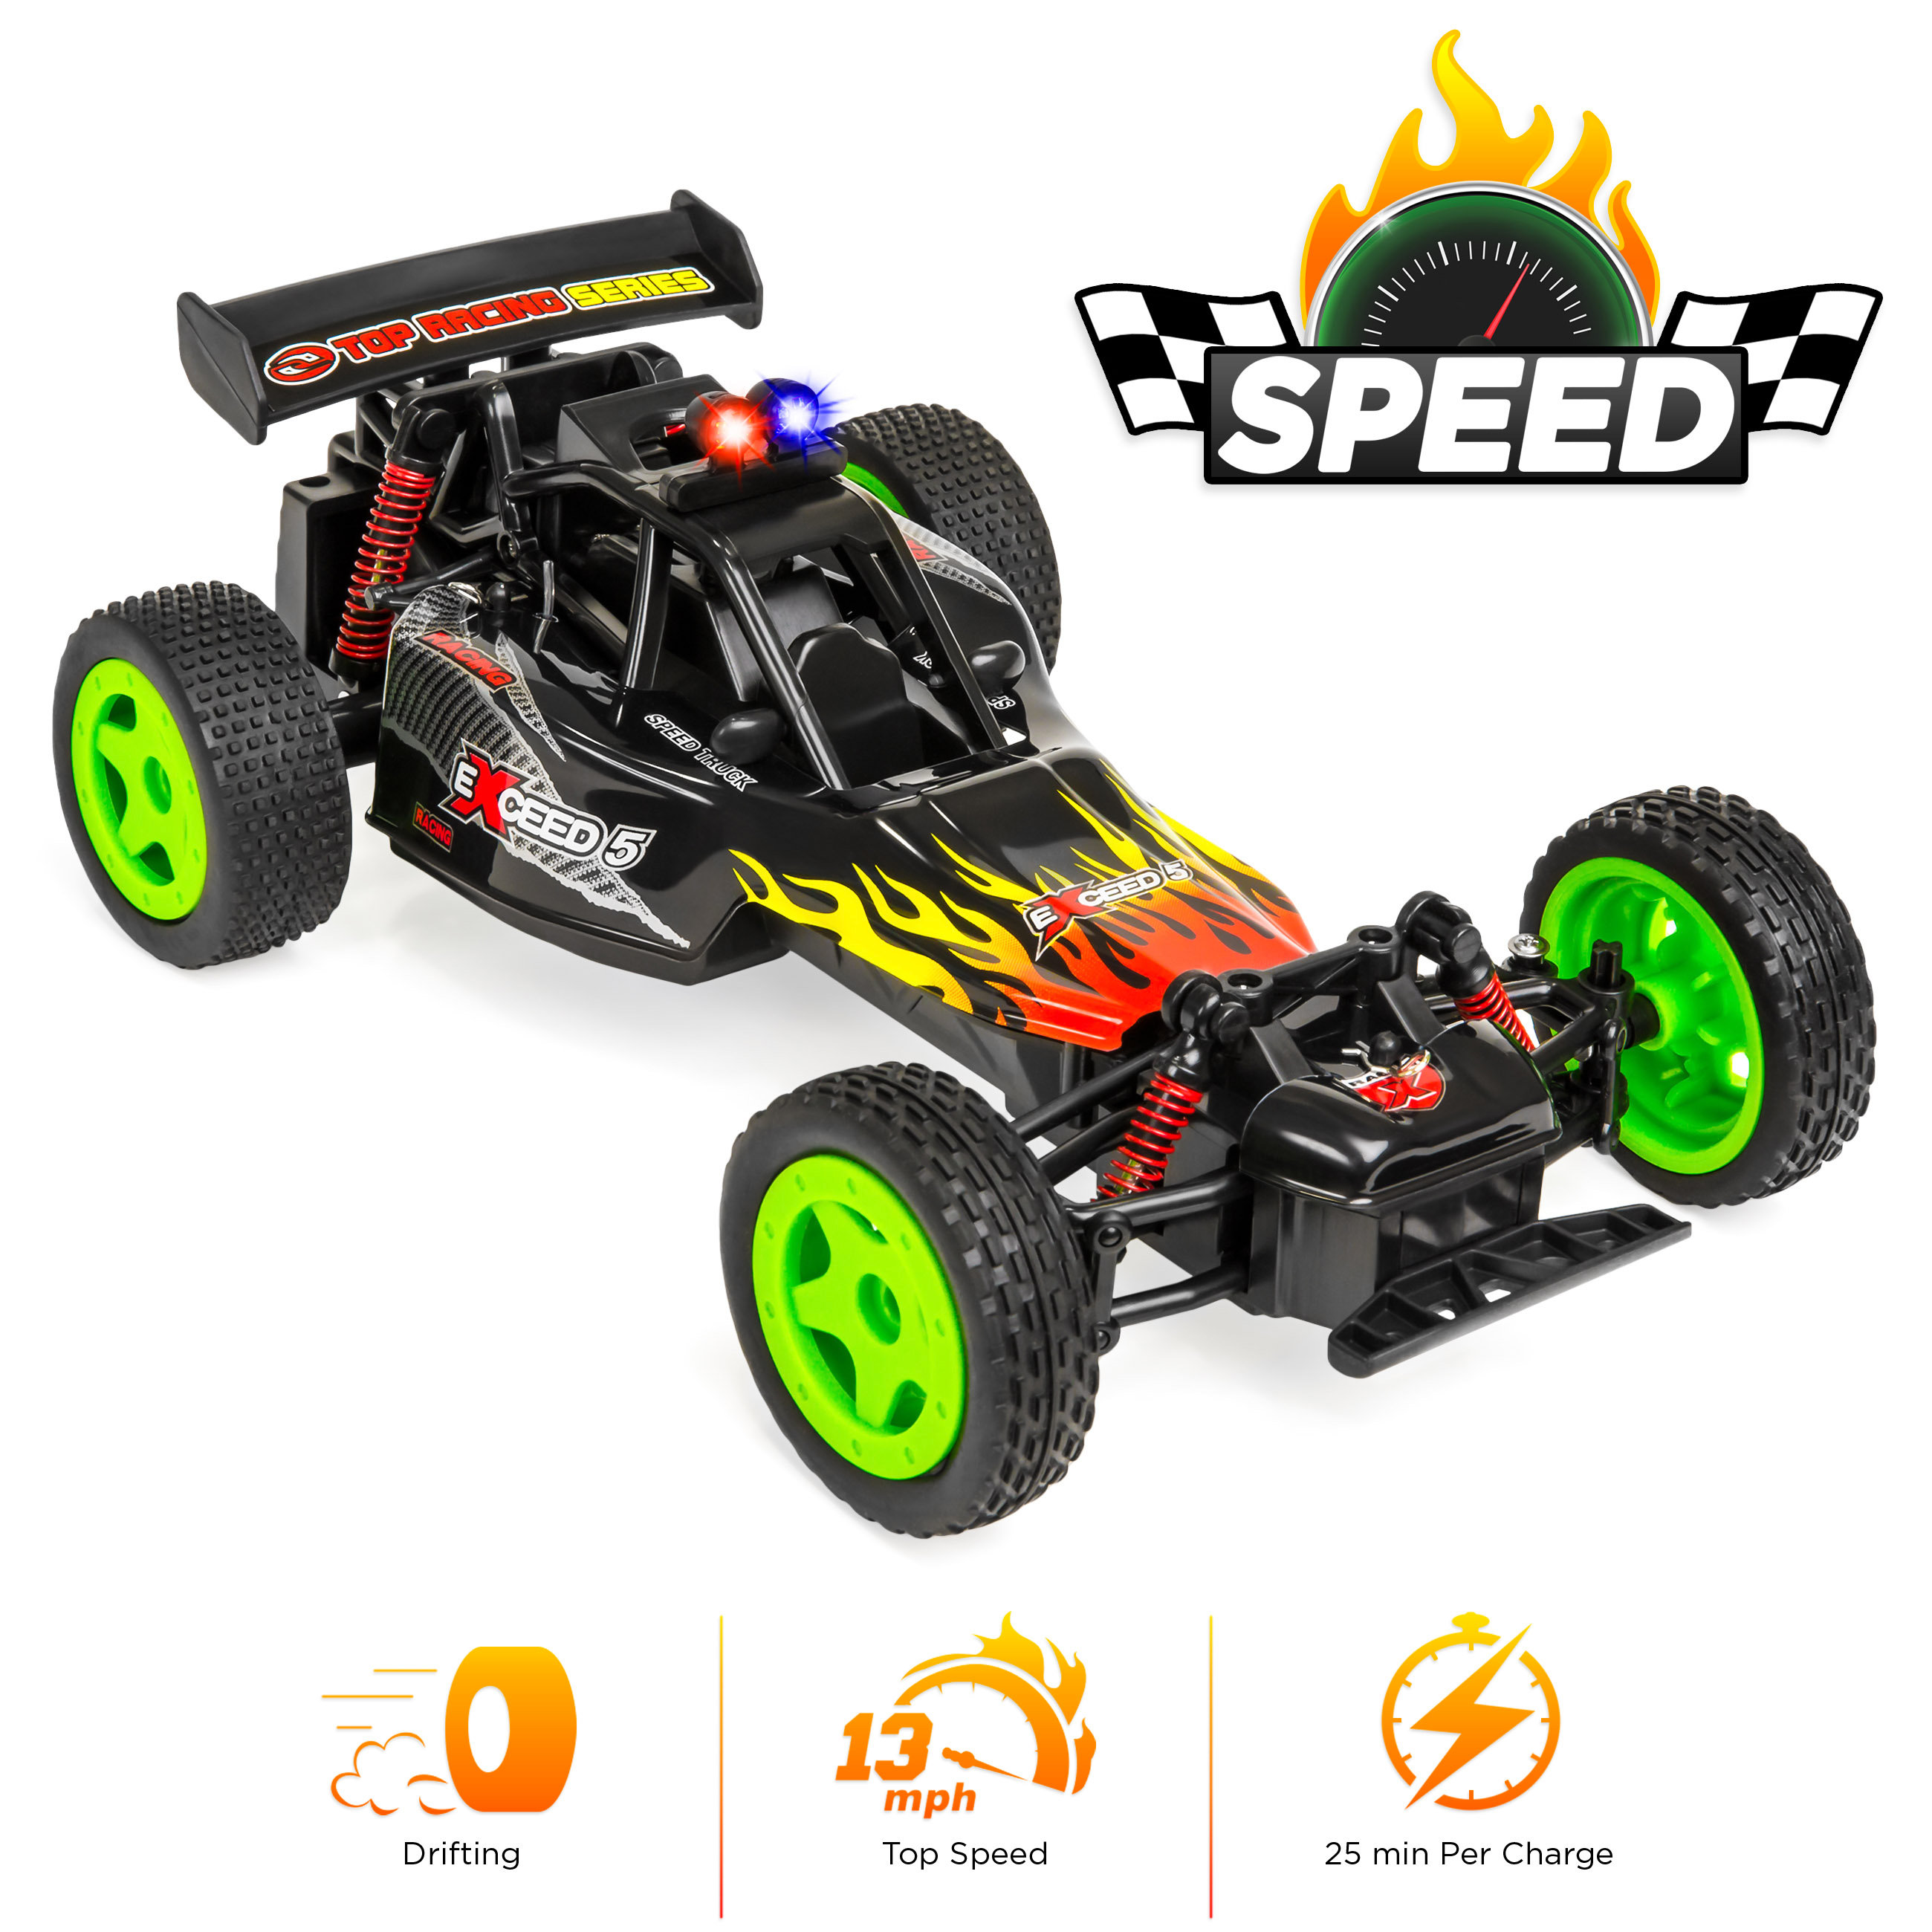 High Speed RC Racing Radio Remote control Car Top Speed 13 mph drifting Car